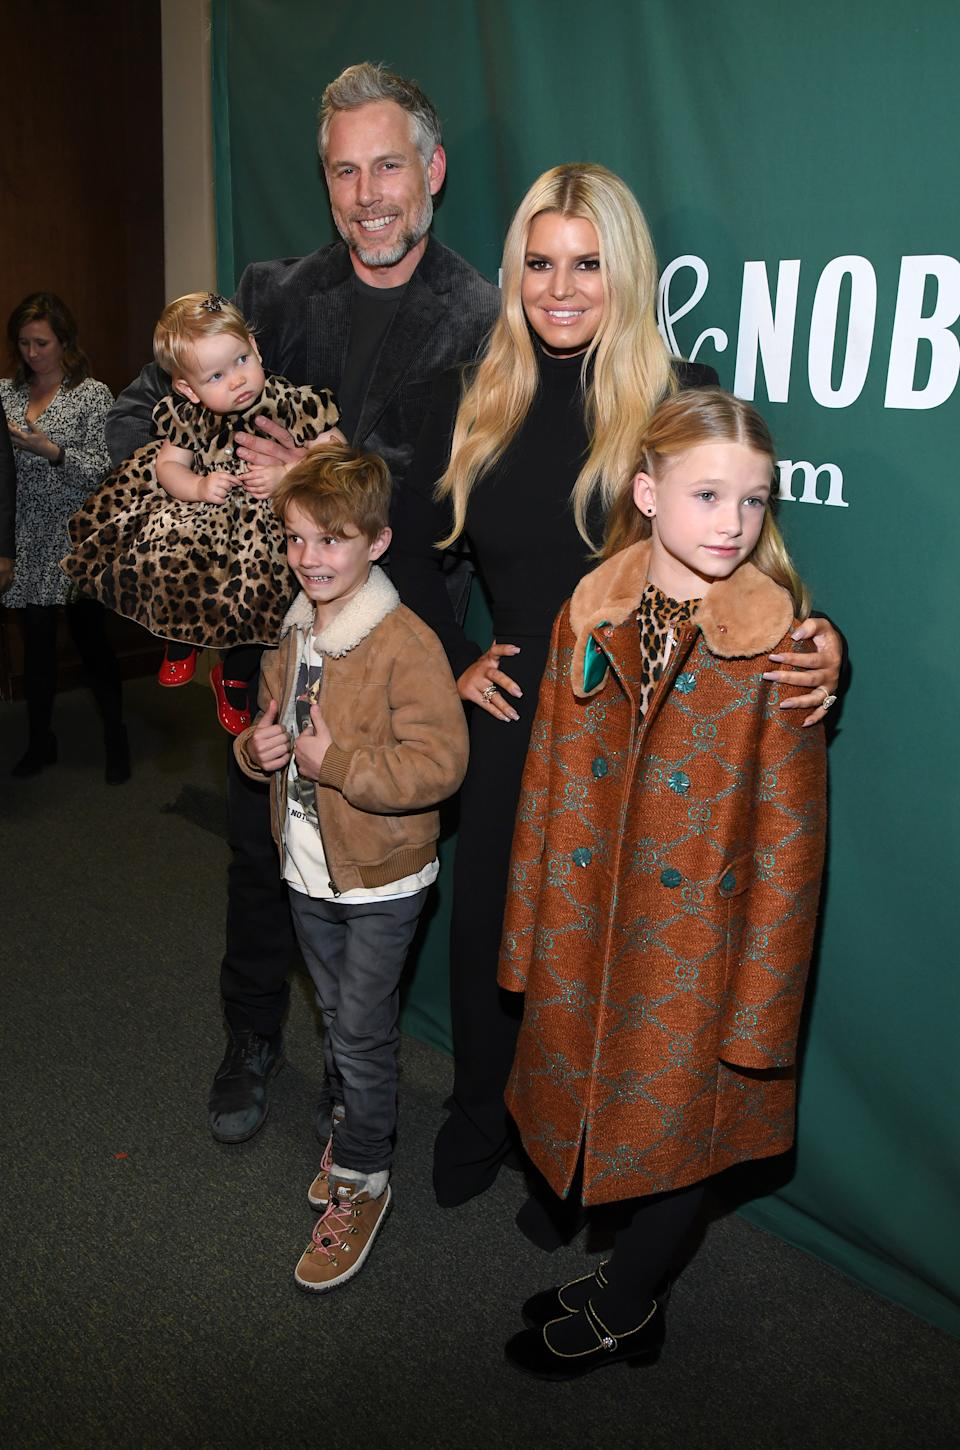 NEW YORK, NEW YORK - FEBRUARY 04:  Eric Johnson, Jessica Simpson, Birdie Mae Johnson, Ace Knute Johnson and Maxwell Drew Johnson pose at Barnes & Noble Union Square on February 04, 2020 in New York City. (Photo by Kevin Mazur/Getty Images)